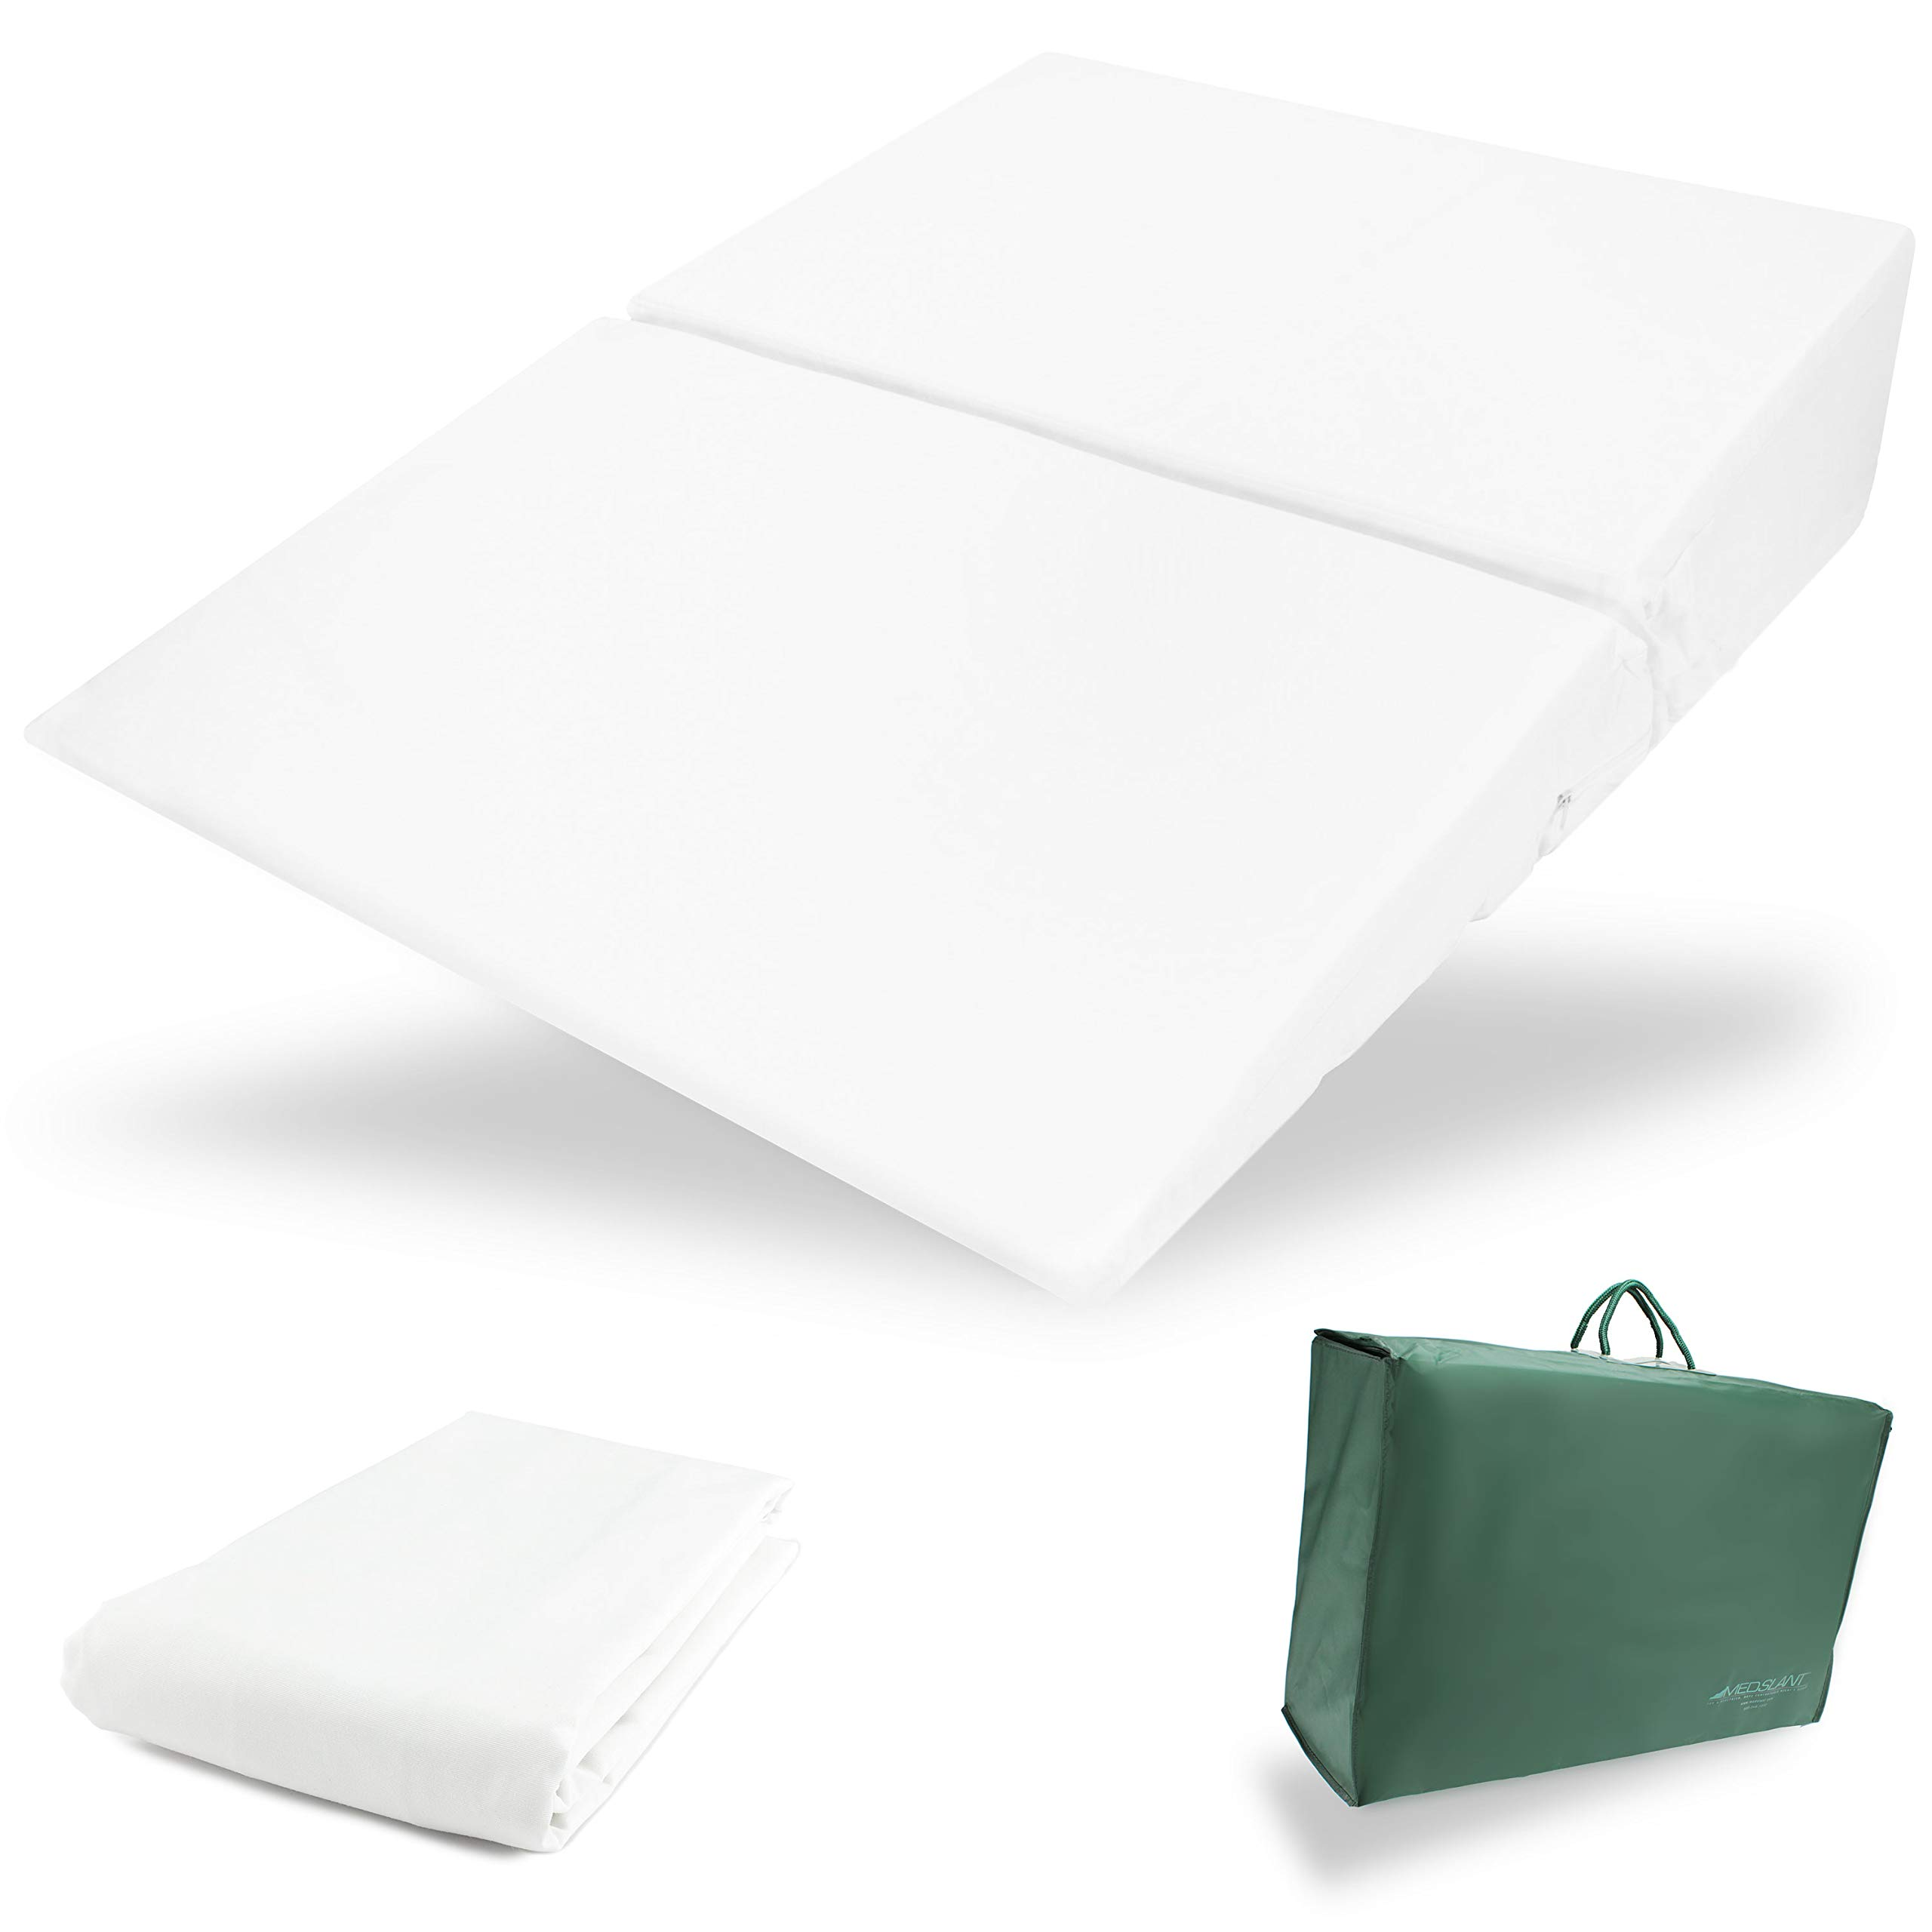 Wedge Pillow for Acid Reflux (32''x24''x7'') with Allergen Cover - Folding Pillow - Fitted Allergen Cover - Zippered Poly-Cotton Folding Cover - Quality Carry Case. Dr. Mike Roizen's Top Reflux Solution by MedSlant